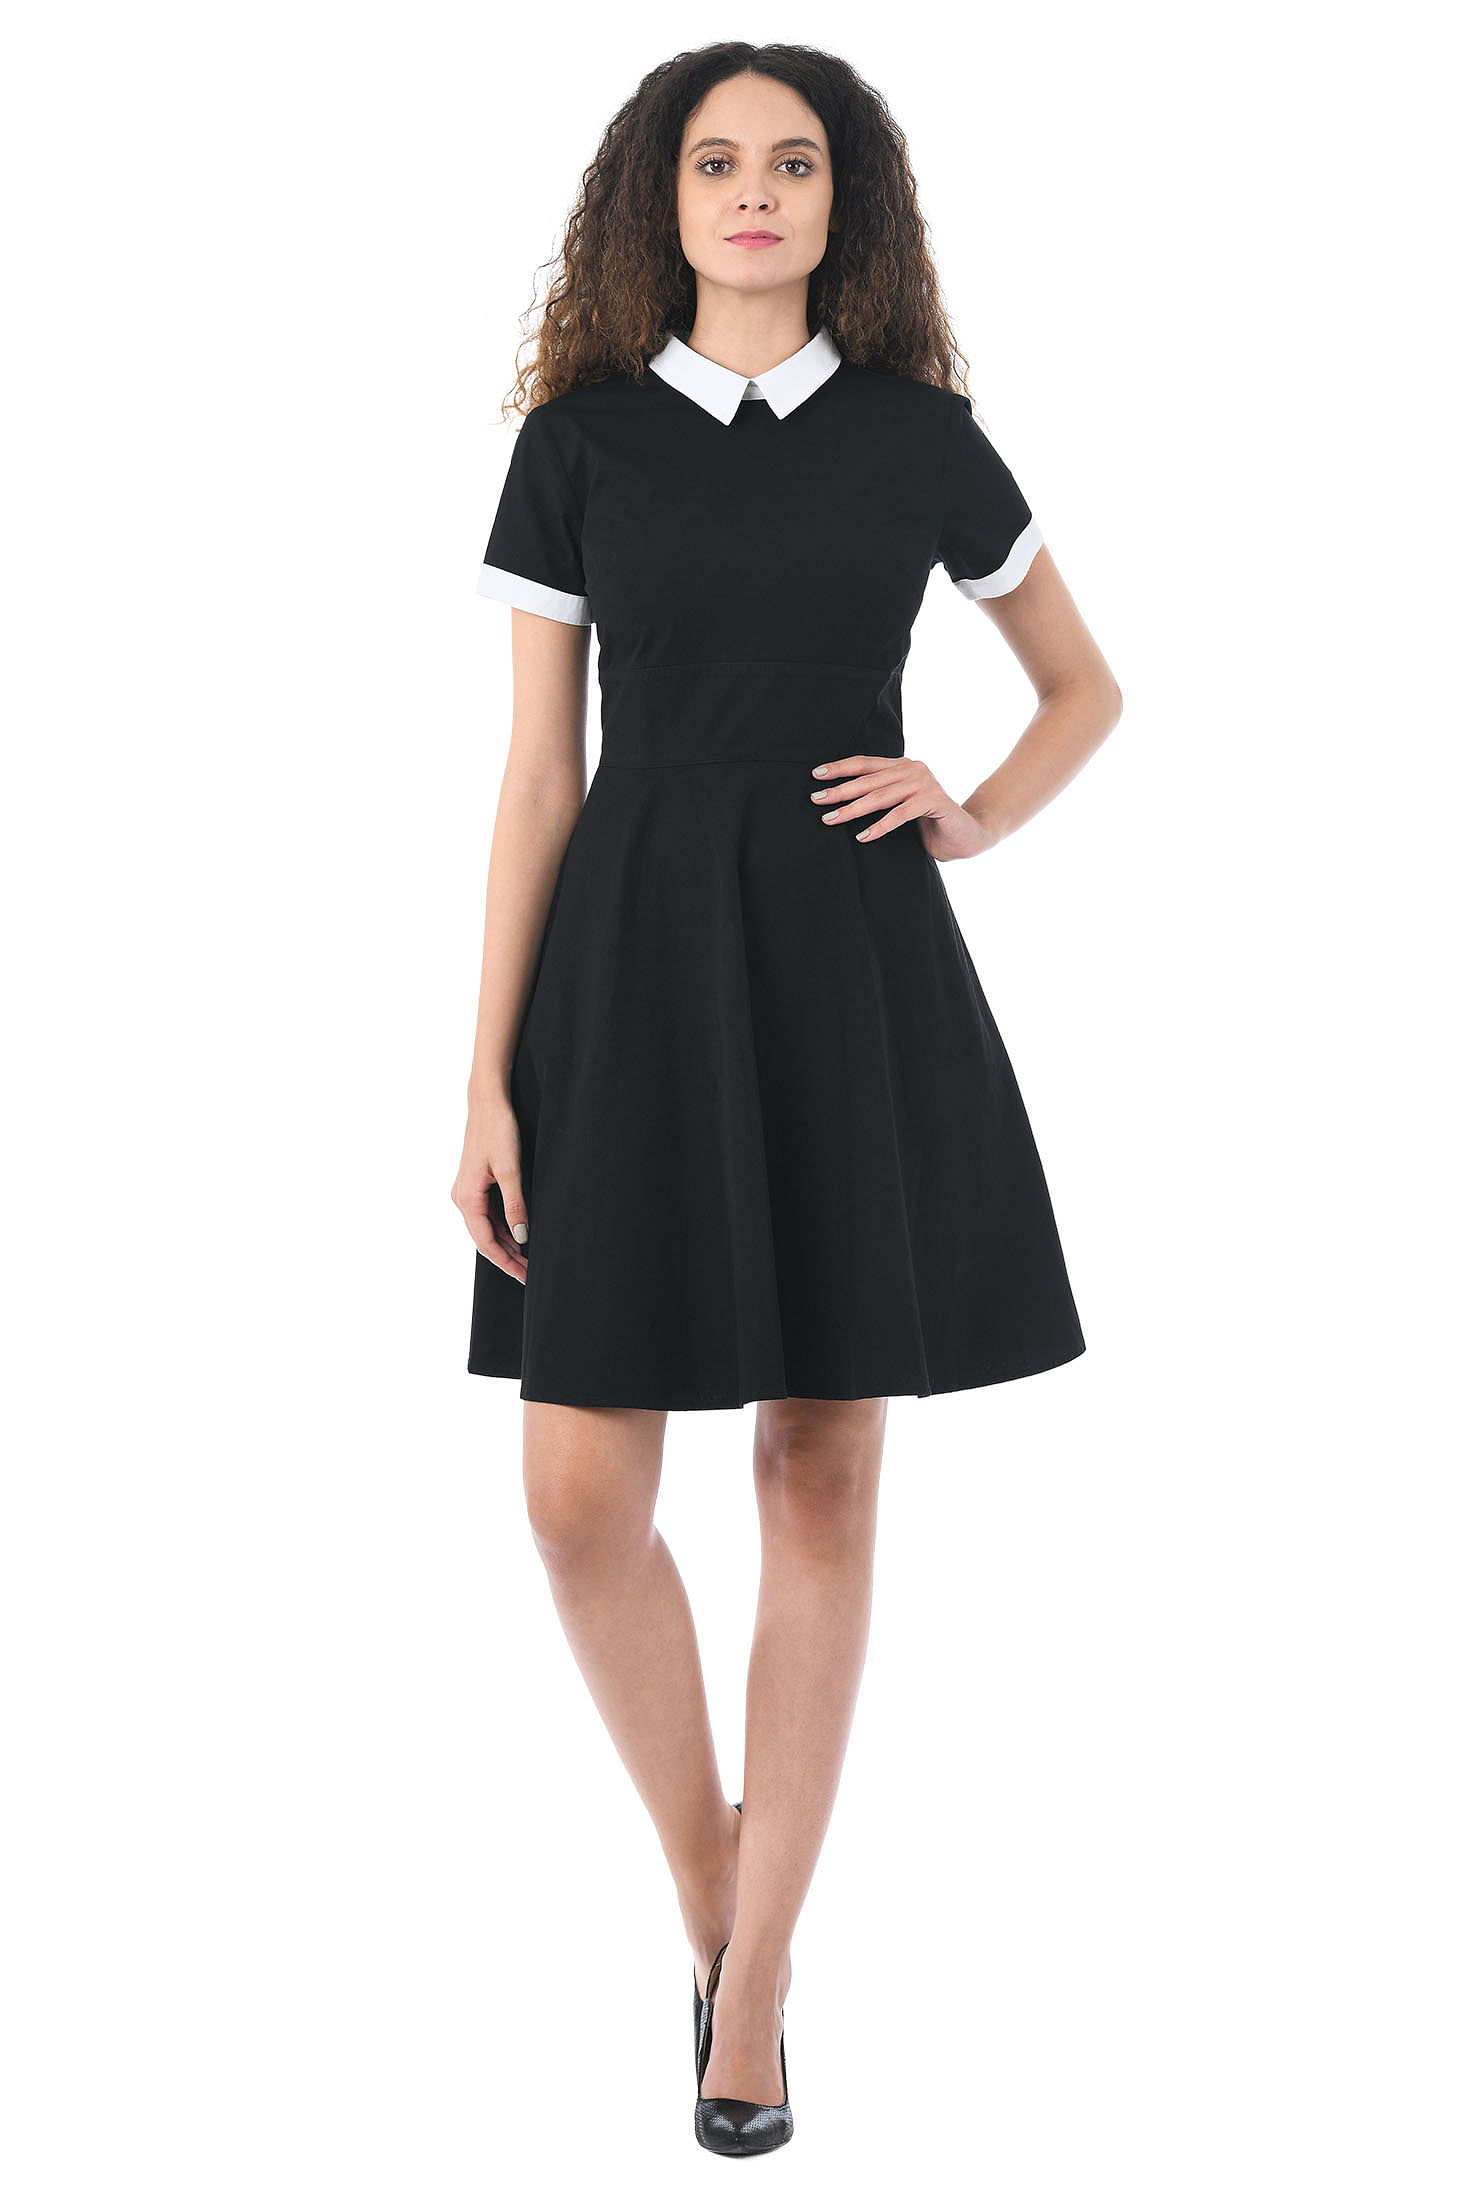 Black dress with white peter pan collar - Above Knee Length Dresses Back Zip Dresses Banded Empire Waist Dresses Black